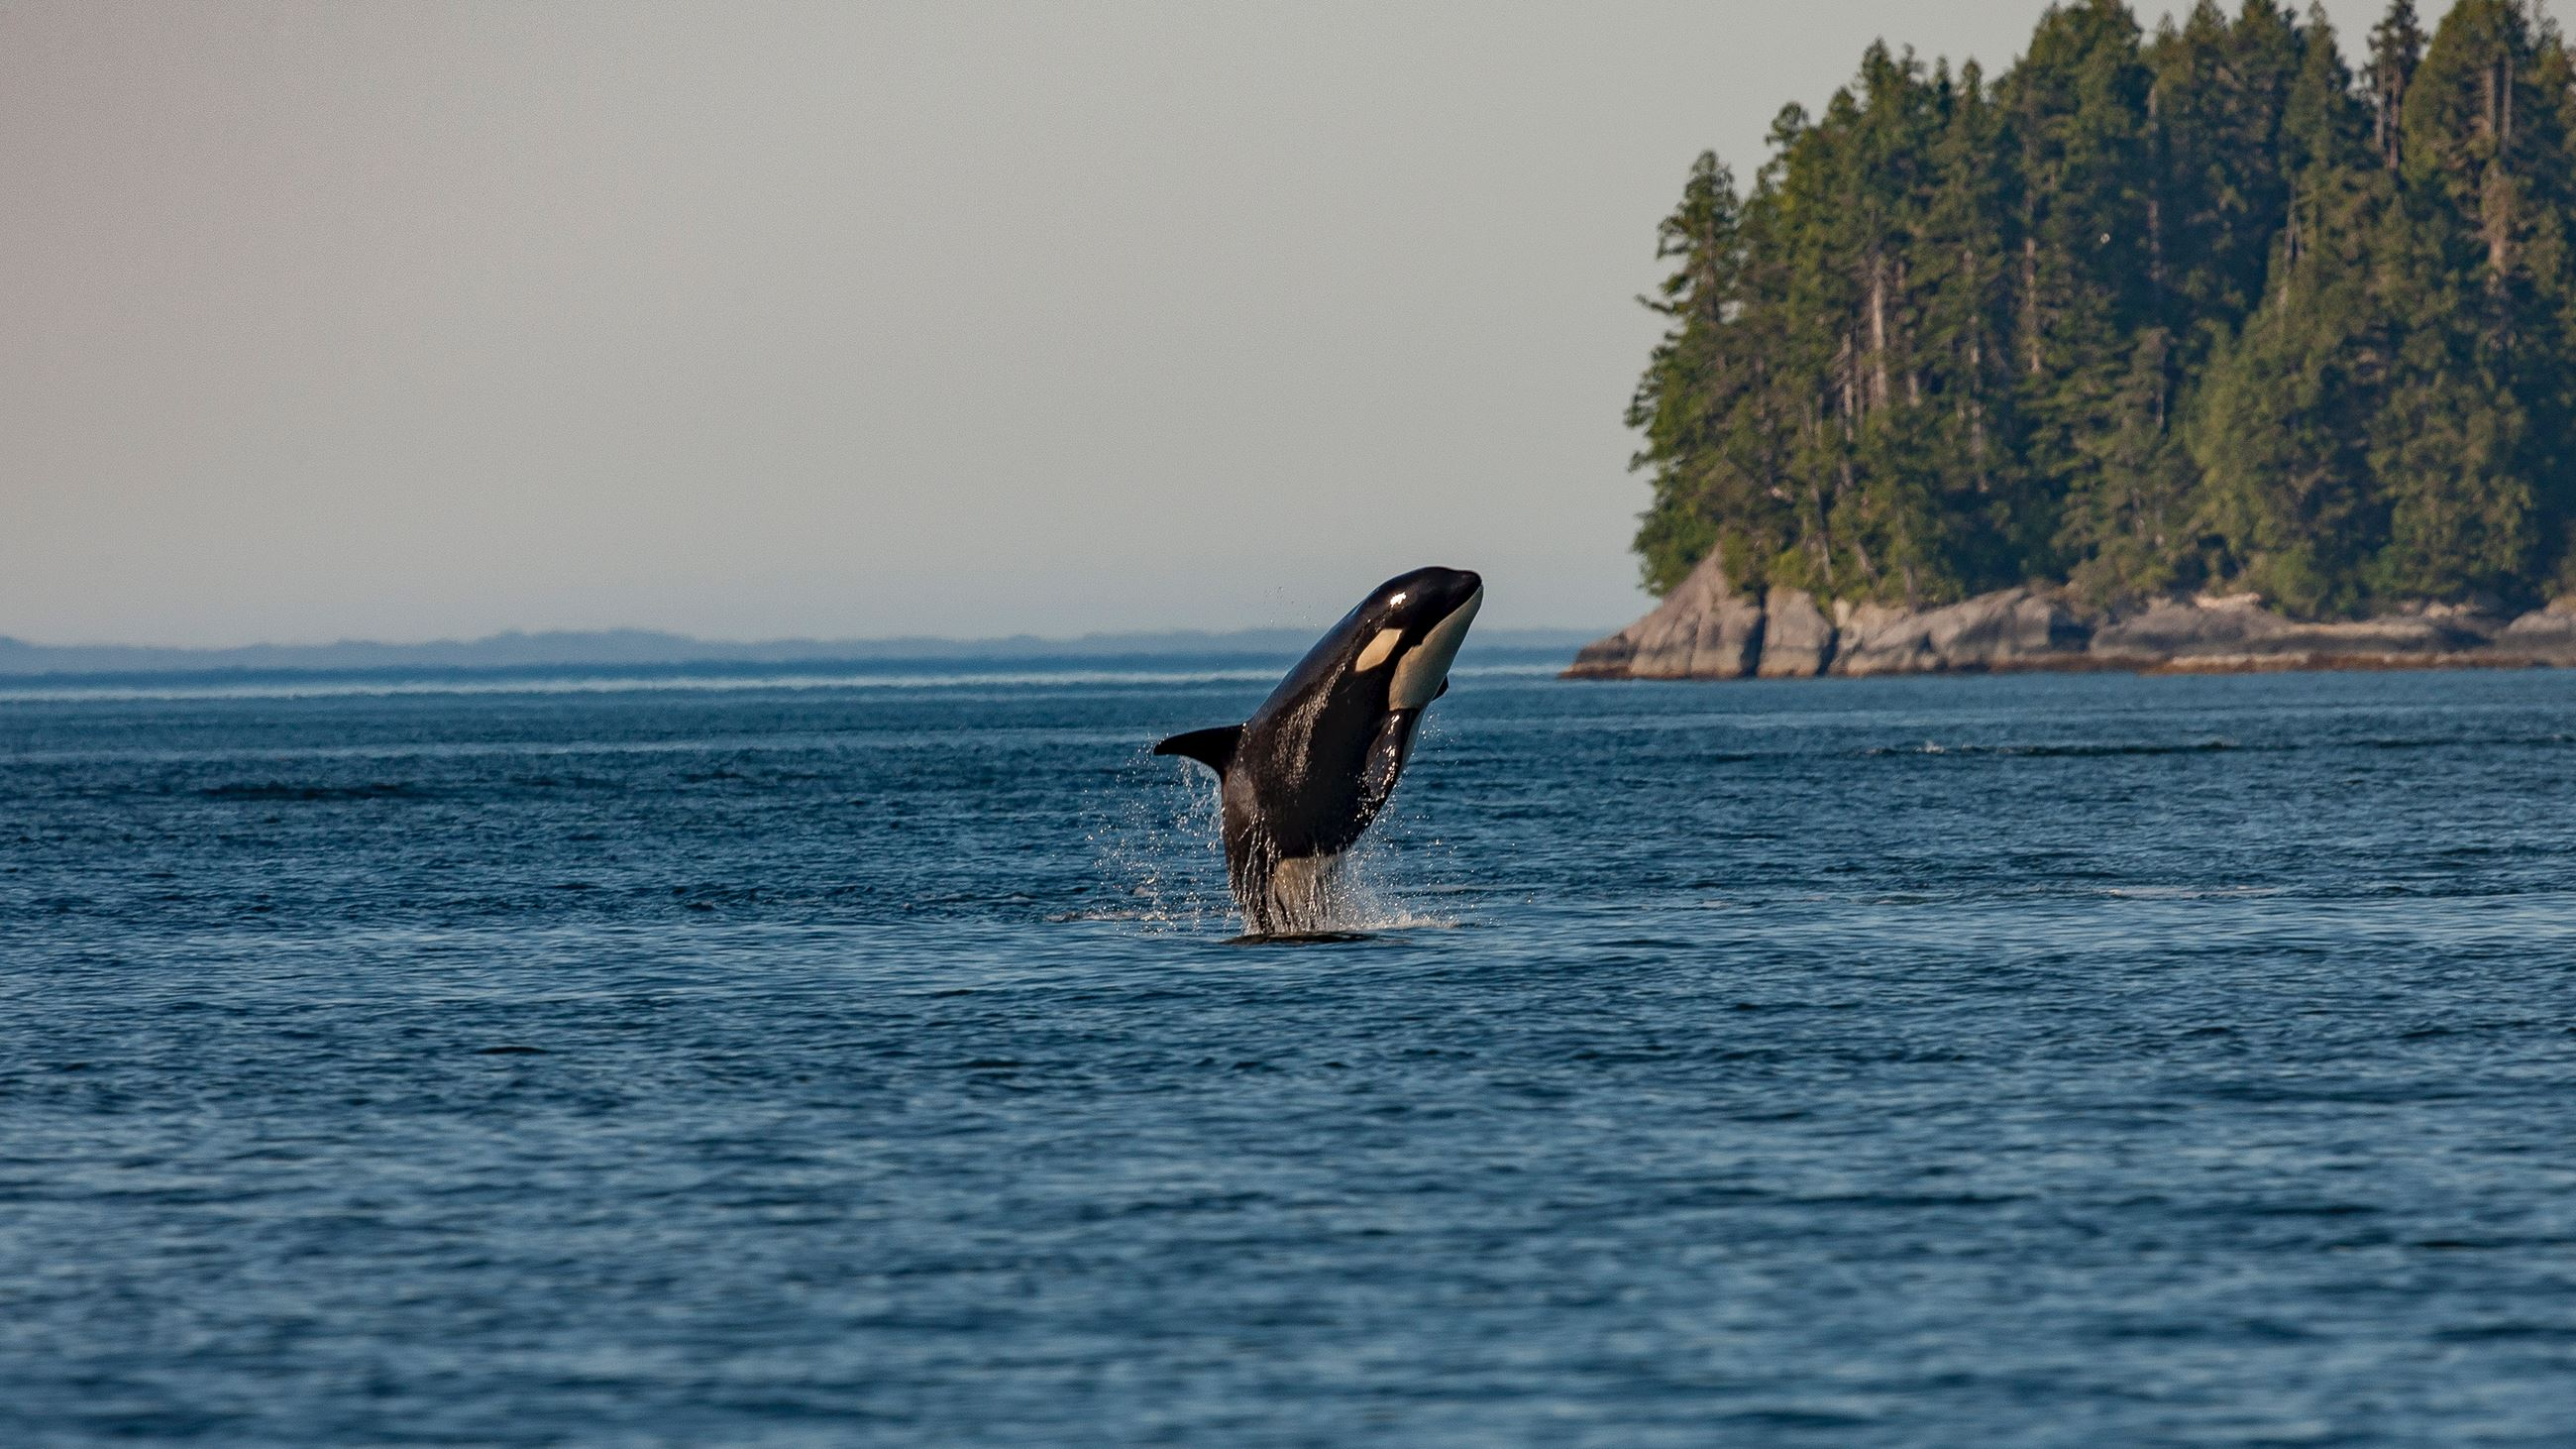 An orca whale jumps out of the water somewhere along the beautiful Washington Coast.